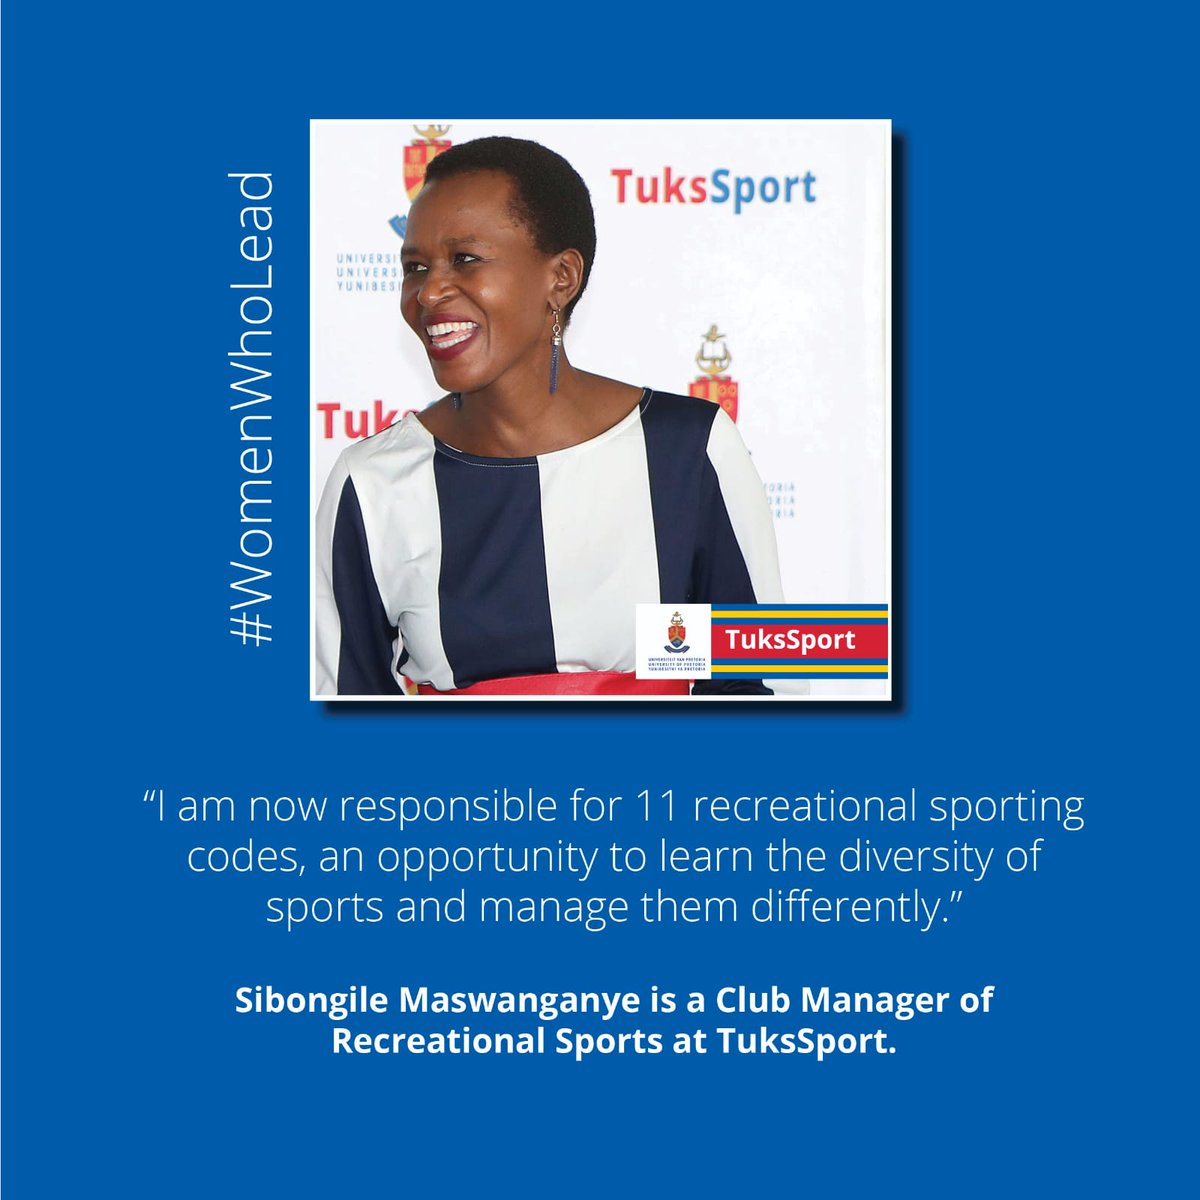 """#TuksSport: SATURDAY SPOTLIGHT  💬 """"I am now responsible for 11 recreational sporting codes, an opportunity to learn the diversity of sports,""""  Sibongile Maswanganye is a Club Manager of Recreational Sports at TuksSport.  ℹ️ TuksSport is celebrating #WomenWhoLead https://t.co/veRRXprK1J"""